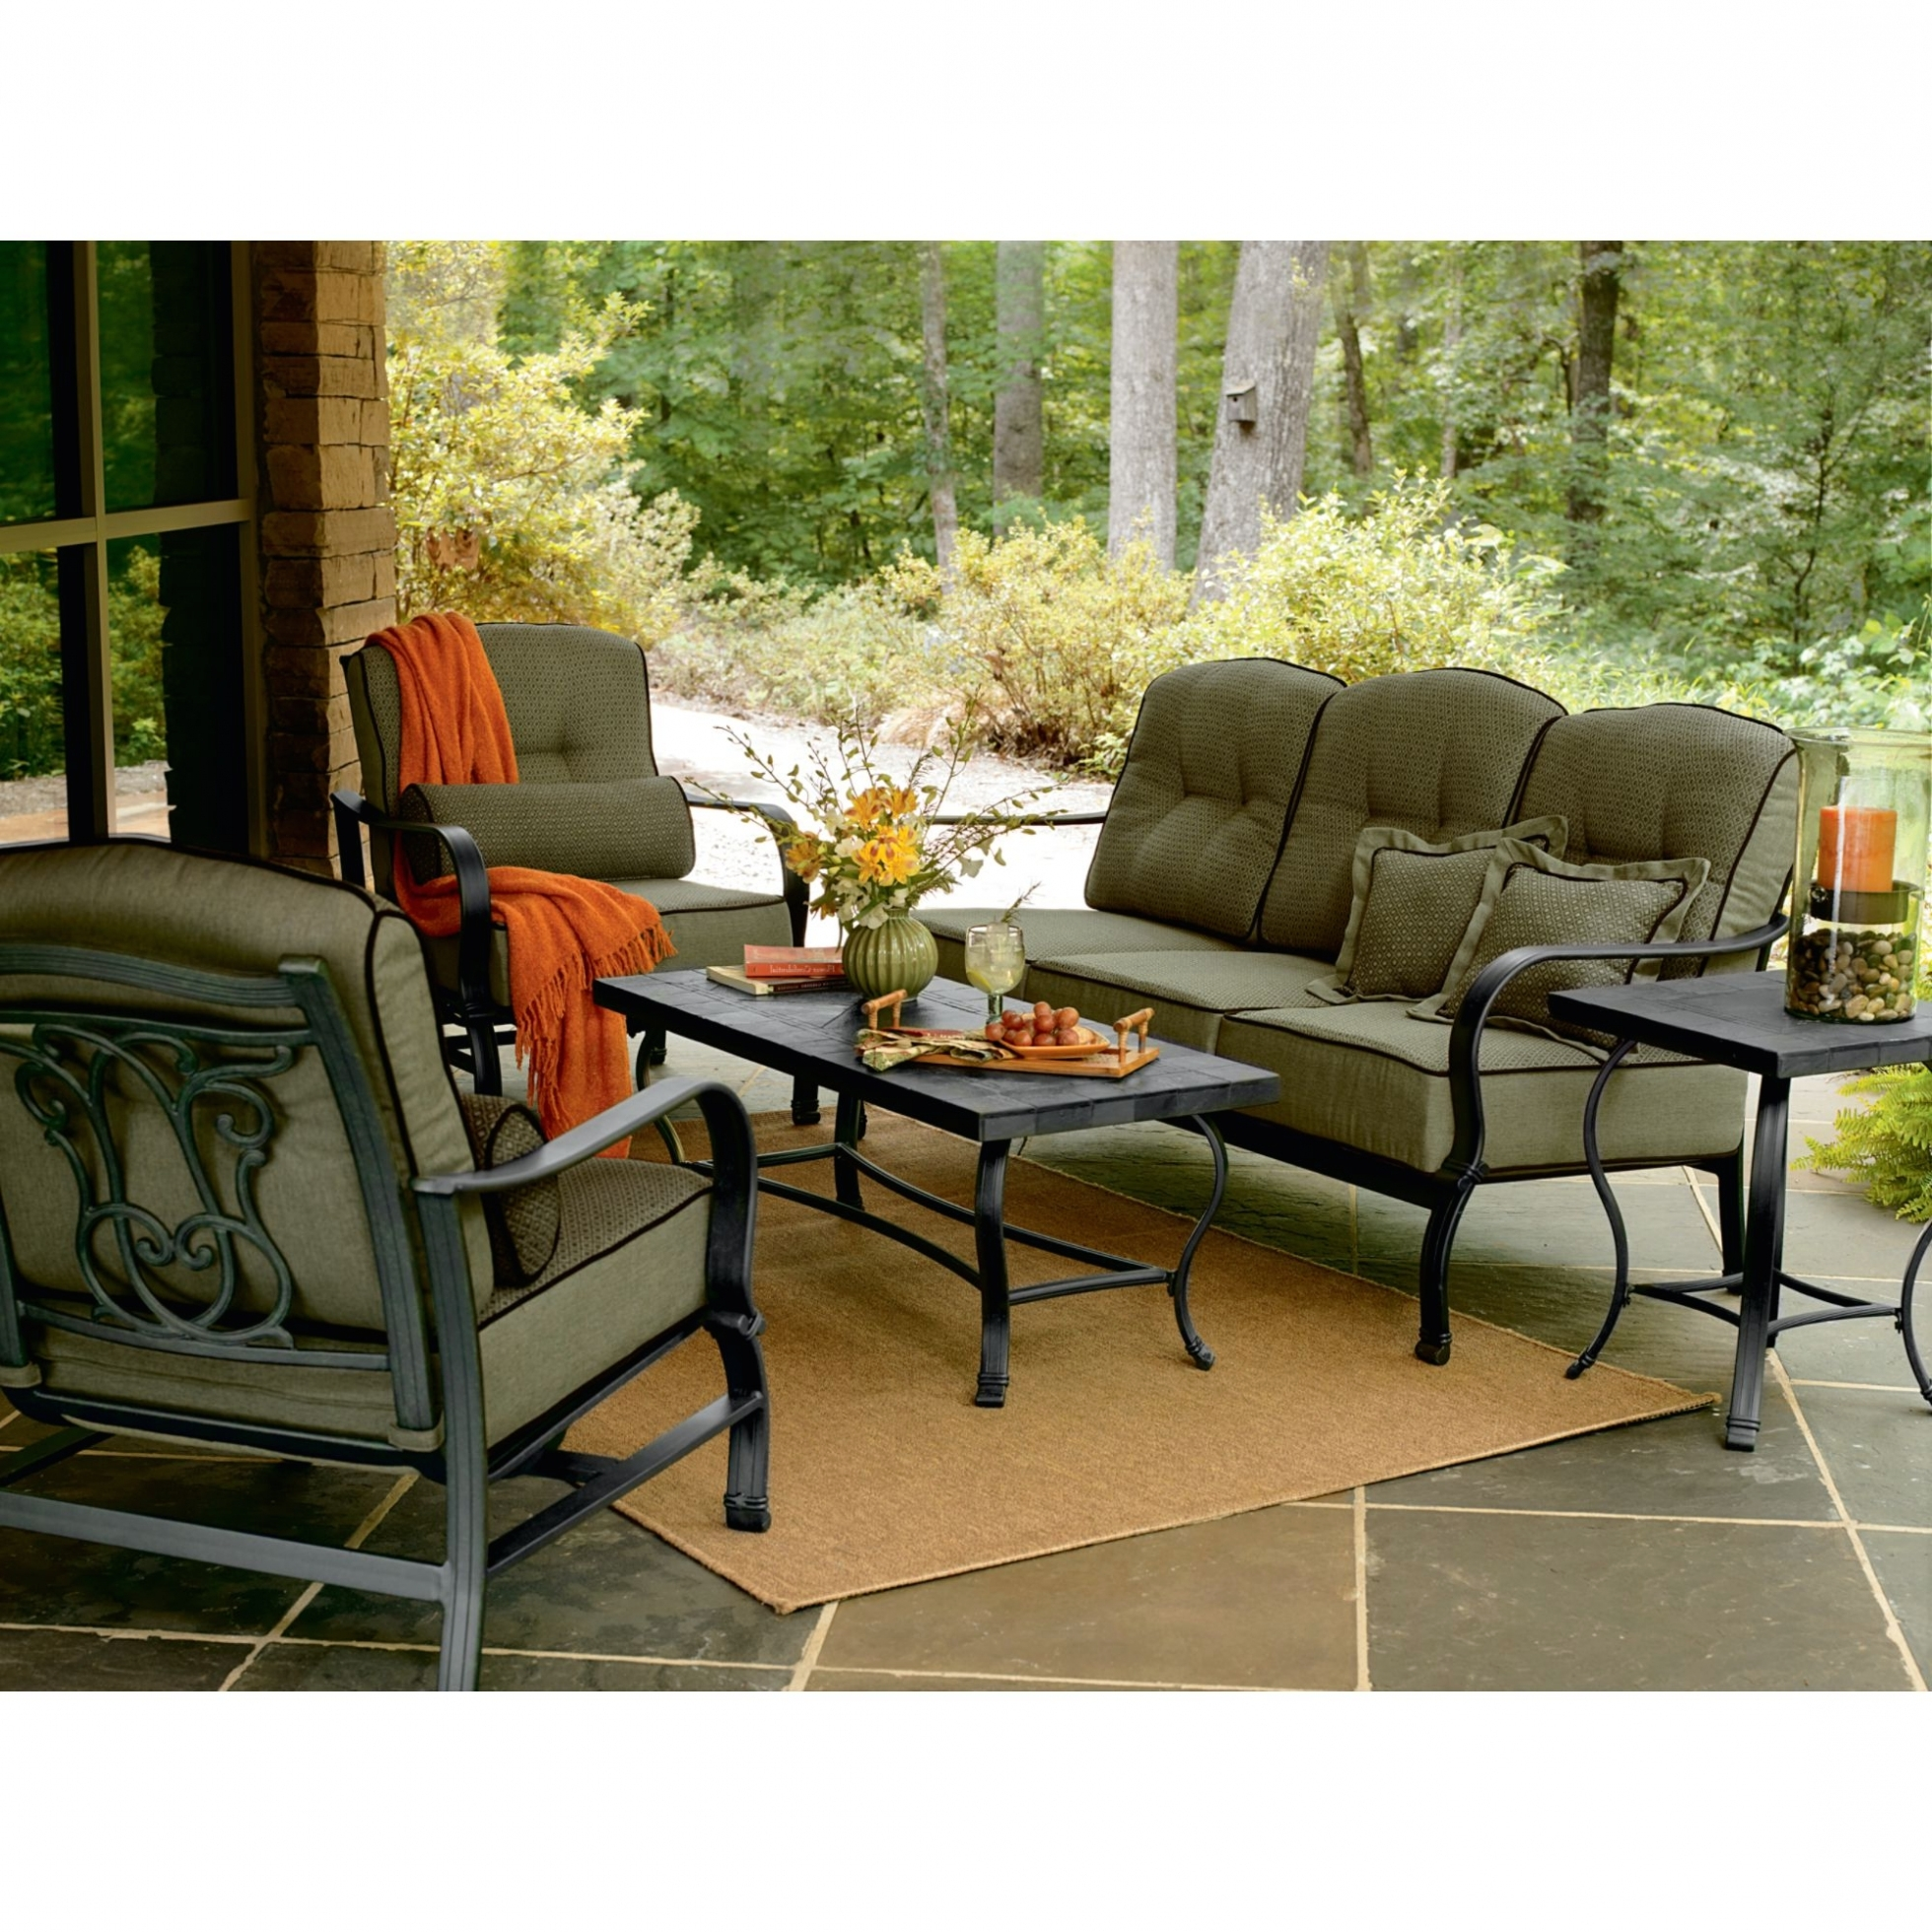 Lazy Boy Patio Conversation Sets In Most Current Lazy Boy Outdoor Furniture – Furniture Ideas (View 2 of 20)